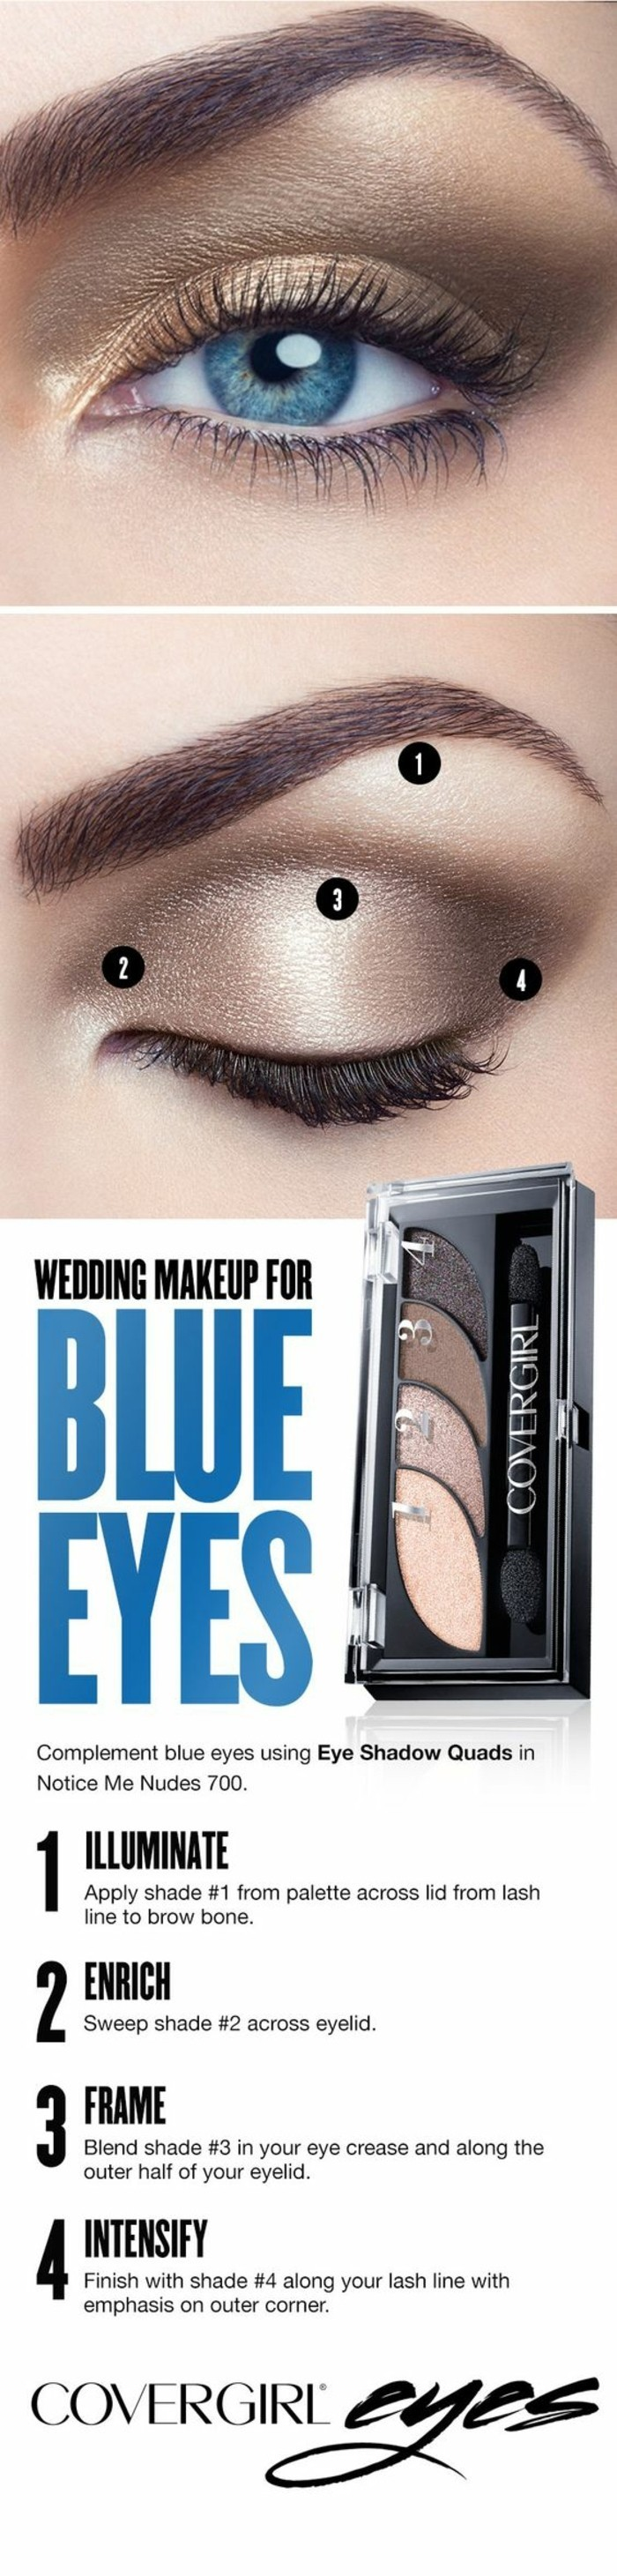 00-covergirl-proposition-pour-maquiller-les-yeux-bleus-comment-maquiller-les-yeux-bleus